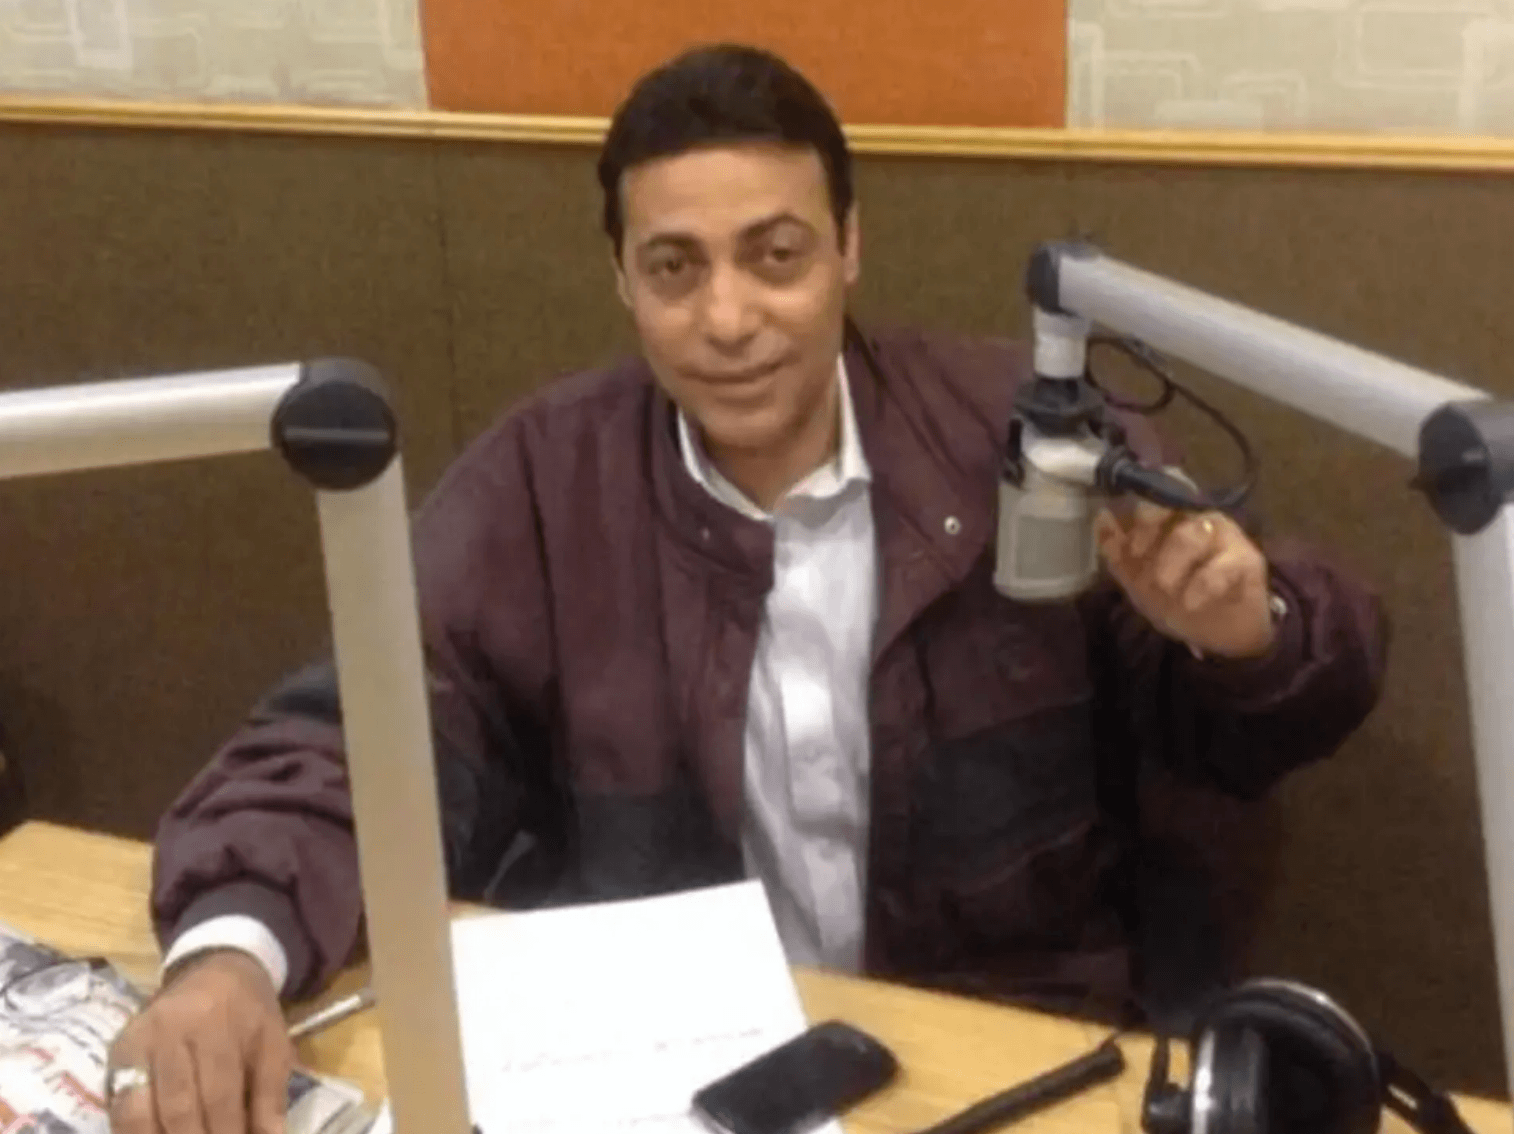 TV talk show host Mohammed al-Ghaity was sentenced to one year in prison for interviewing a gay man. (Photo courtesy of The Independent)